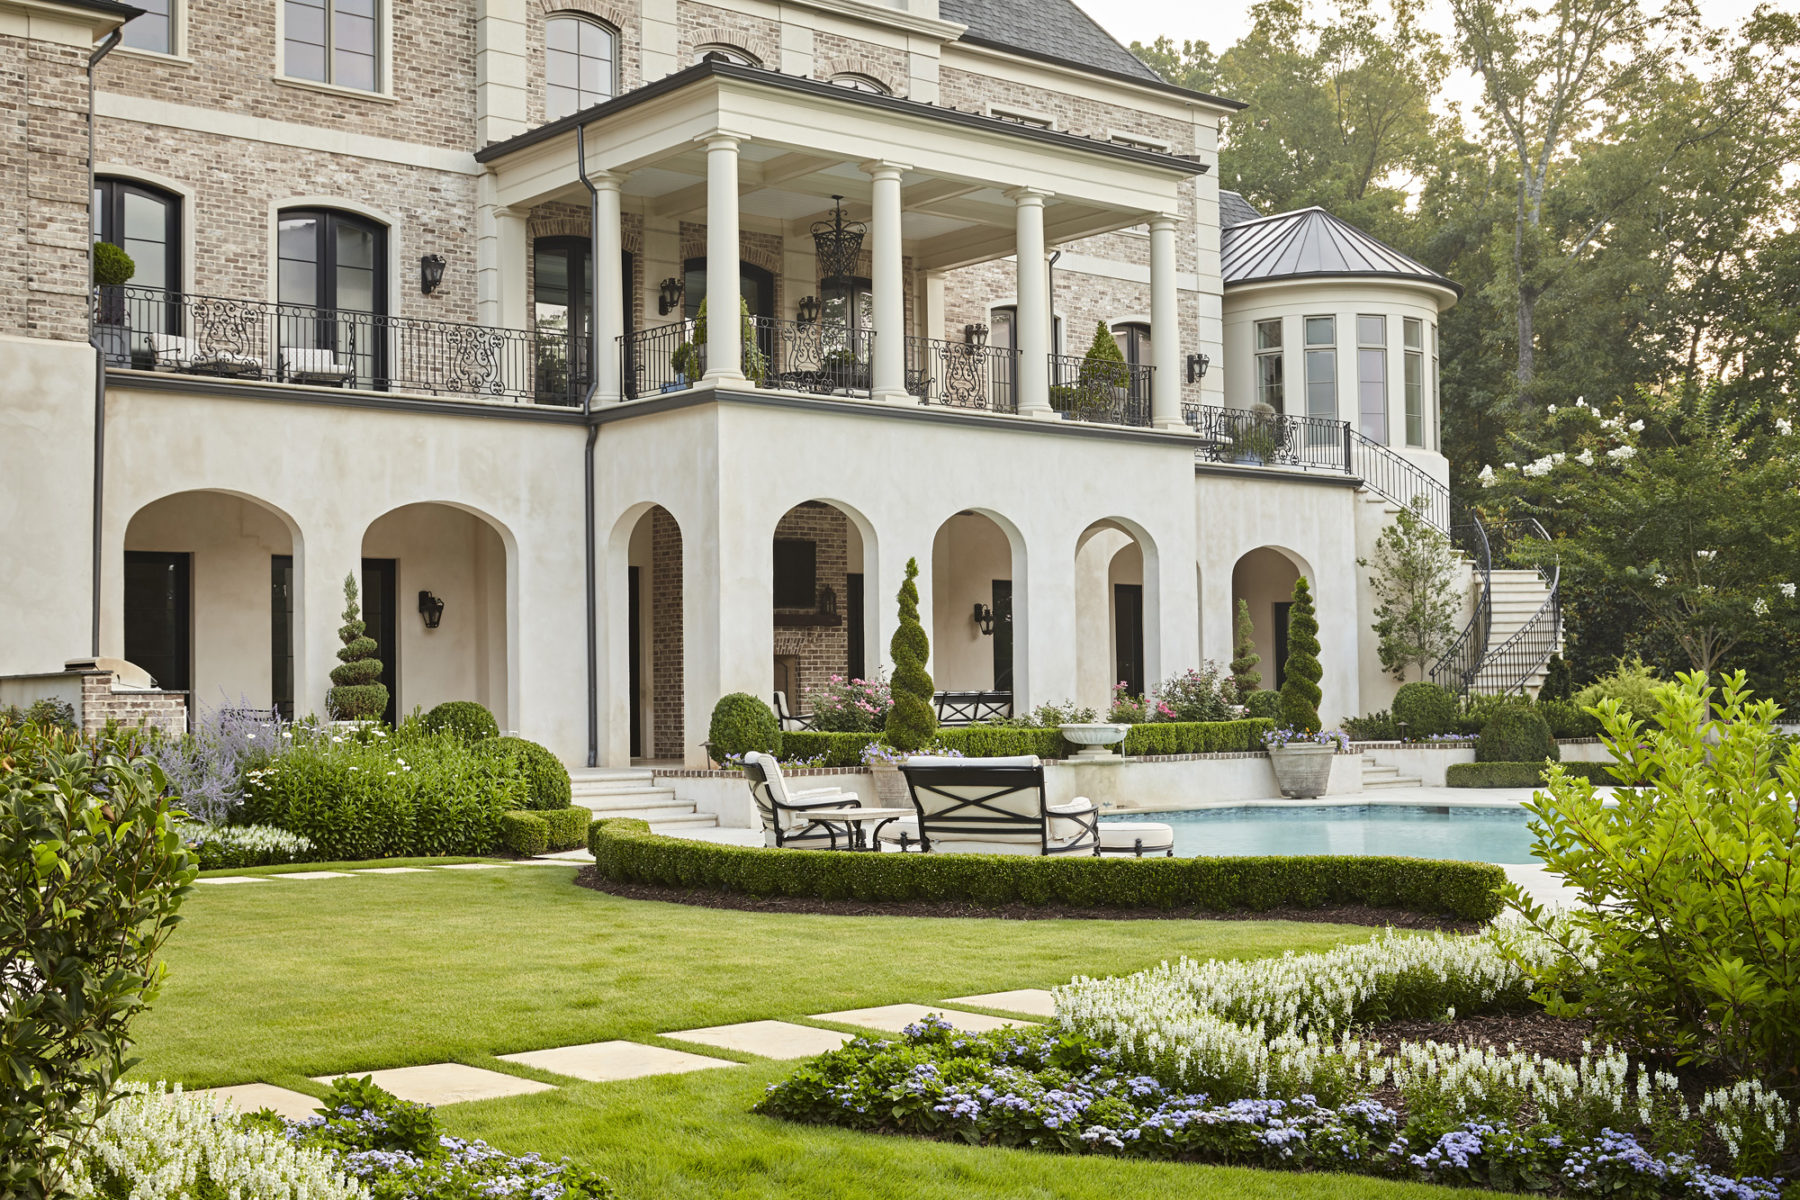 Curved clipped boxwood echoes quatrefoil pool with arched loggia and second floor terrace in neoclassical Harrison Design home